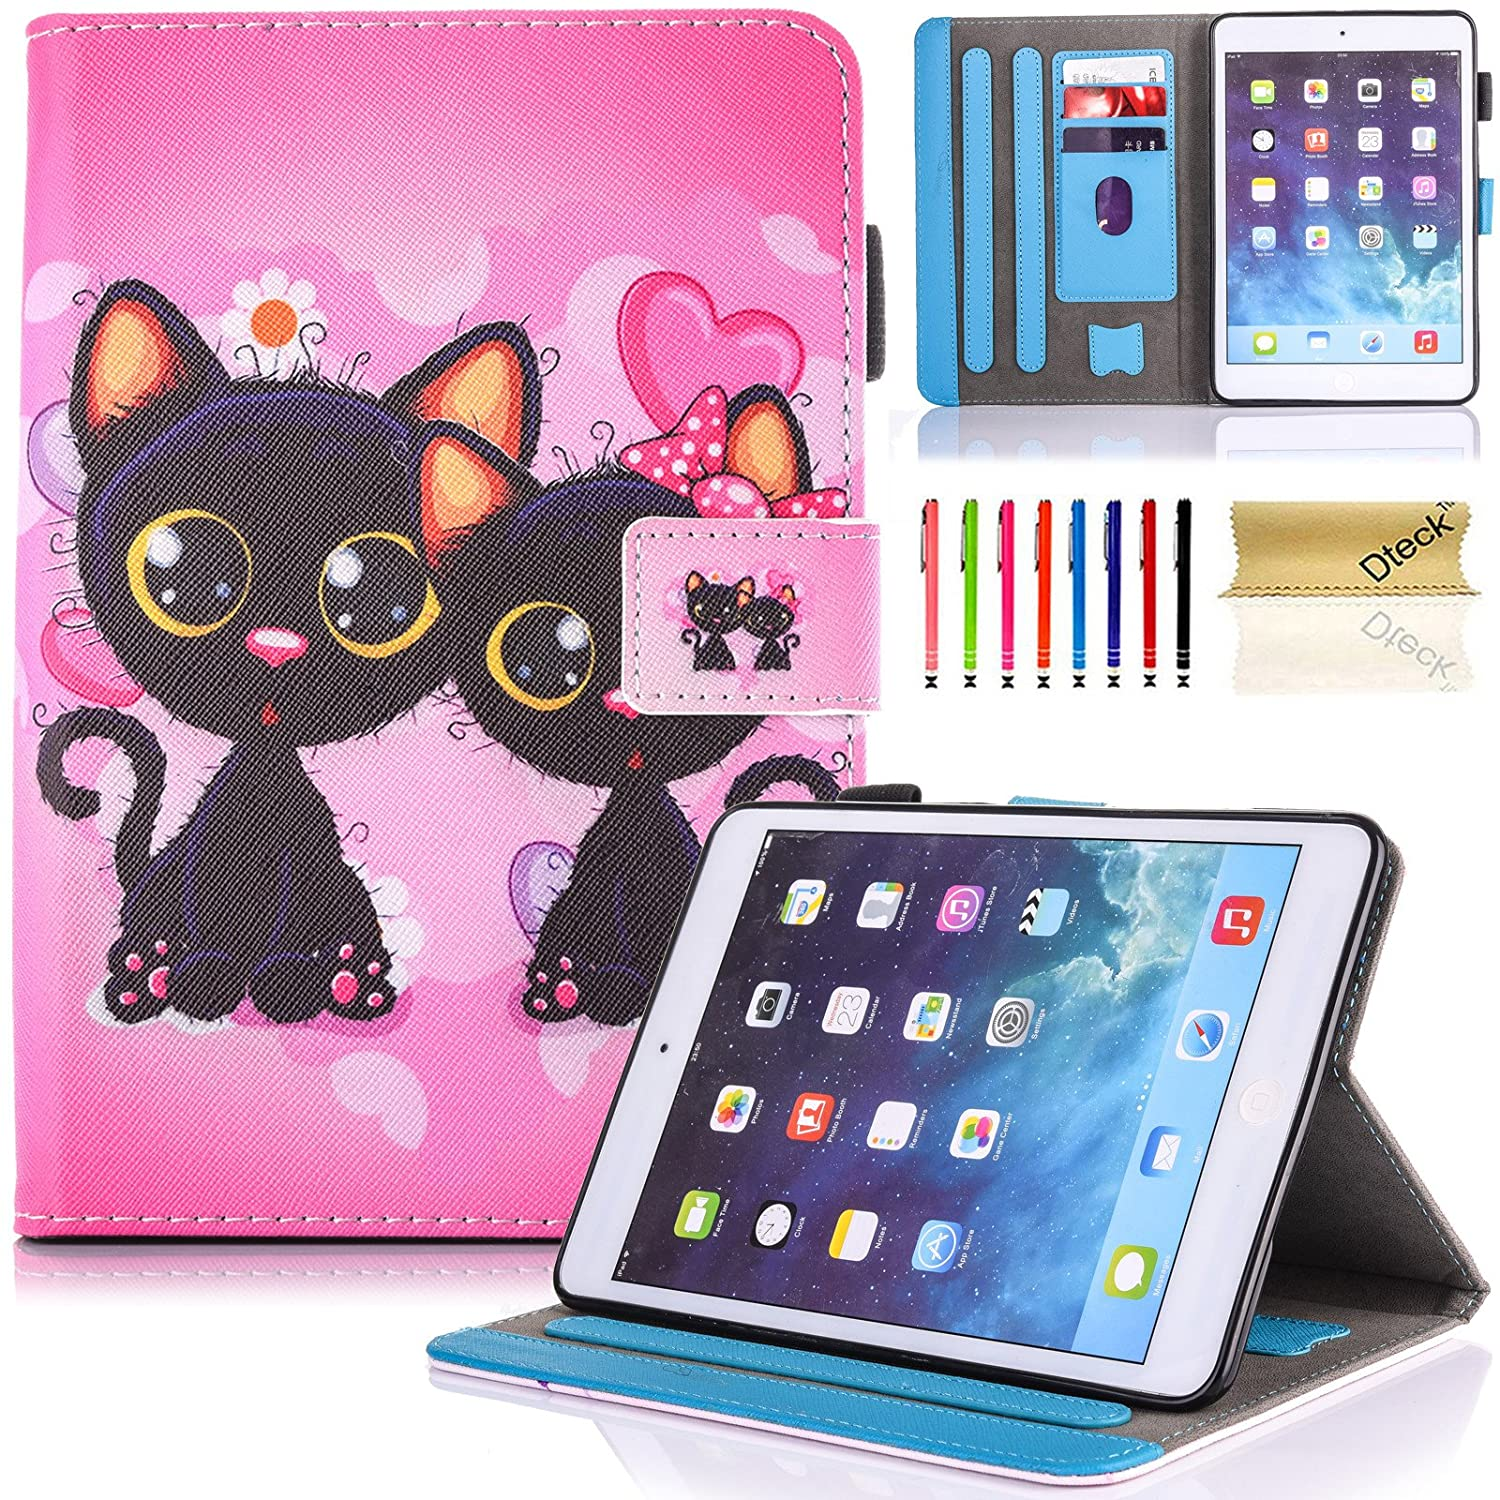 iPad 9.7 inch 2018 2017 Case/iPad Air Case/iPad Air 2 Case, Dteck PU Leather Folio Smart Cover with Auto Sleep Wake Stand Wallet Case for Apple iPad 6th/5th Gen,iPad Air 1/2, Beach Live it iPad568-DK-0901